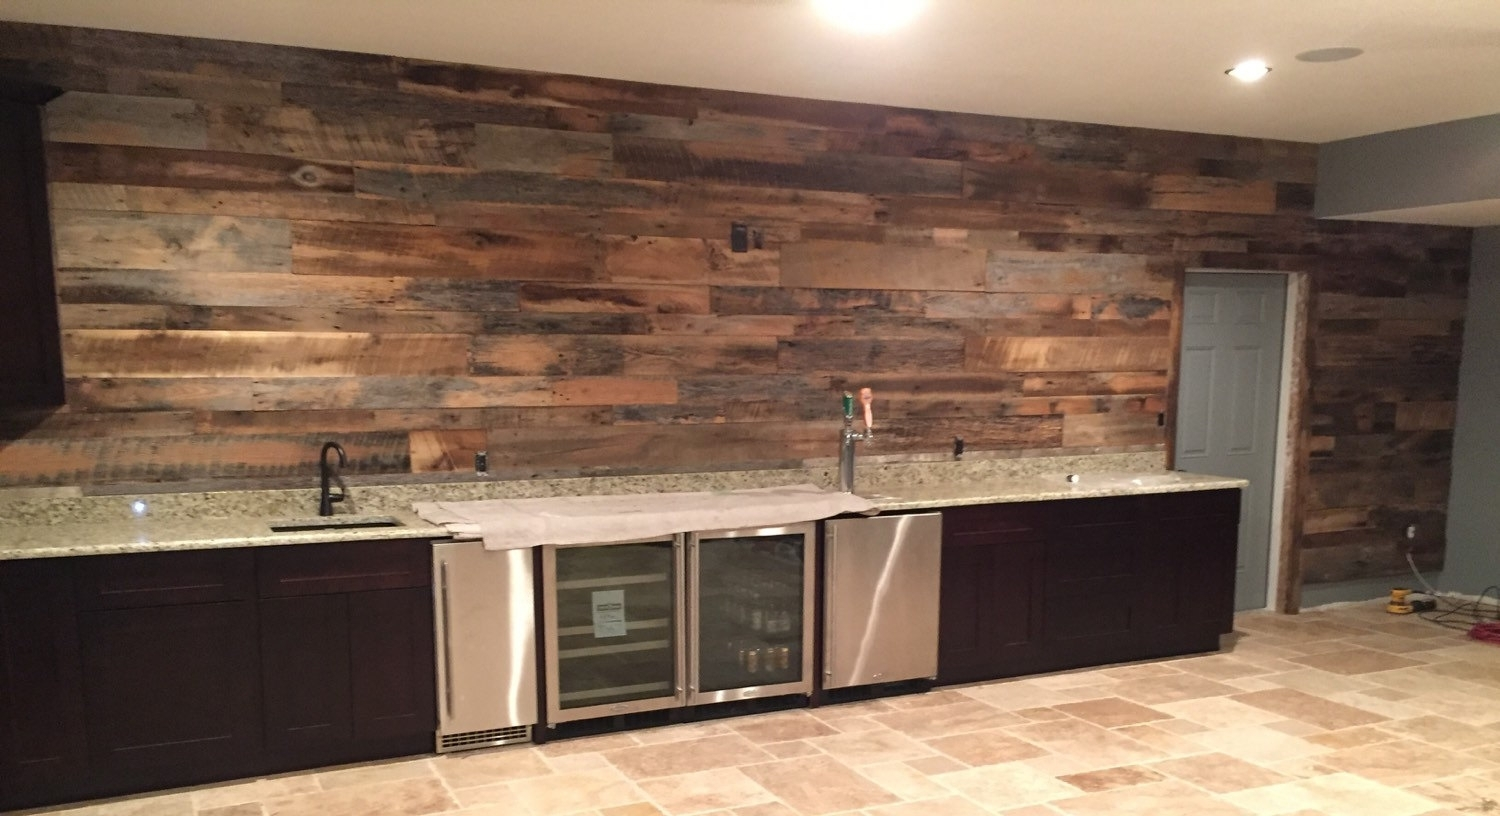 Reclaimed Wood Accent Wall — Cookwithalocal Home And Space Decor With Latest Reclaimed Wood Wall Accents (Gallery 6 of 15)